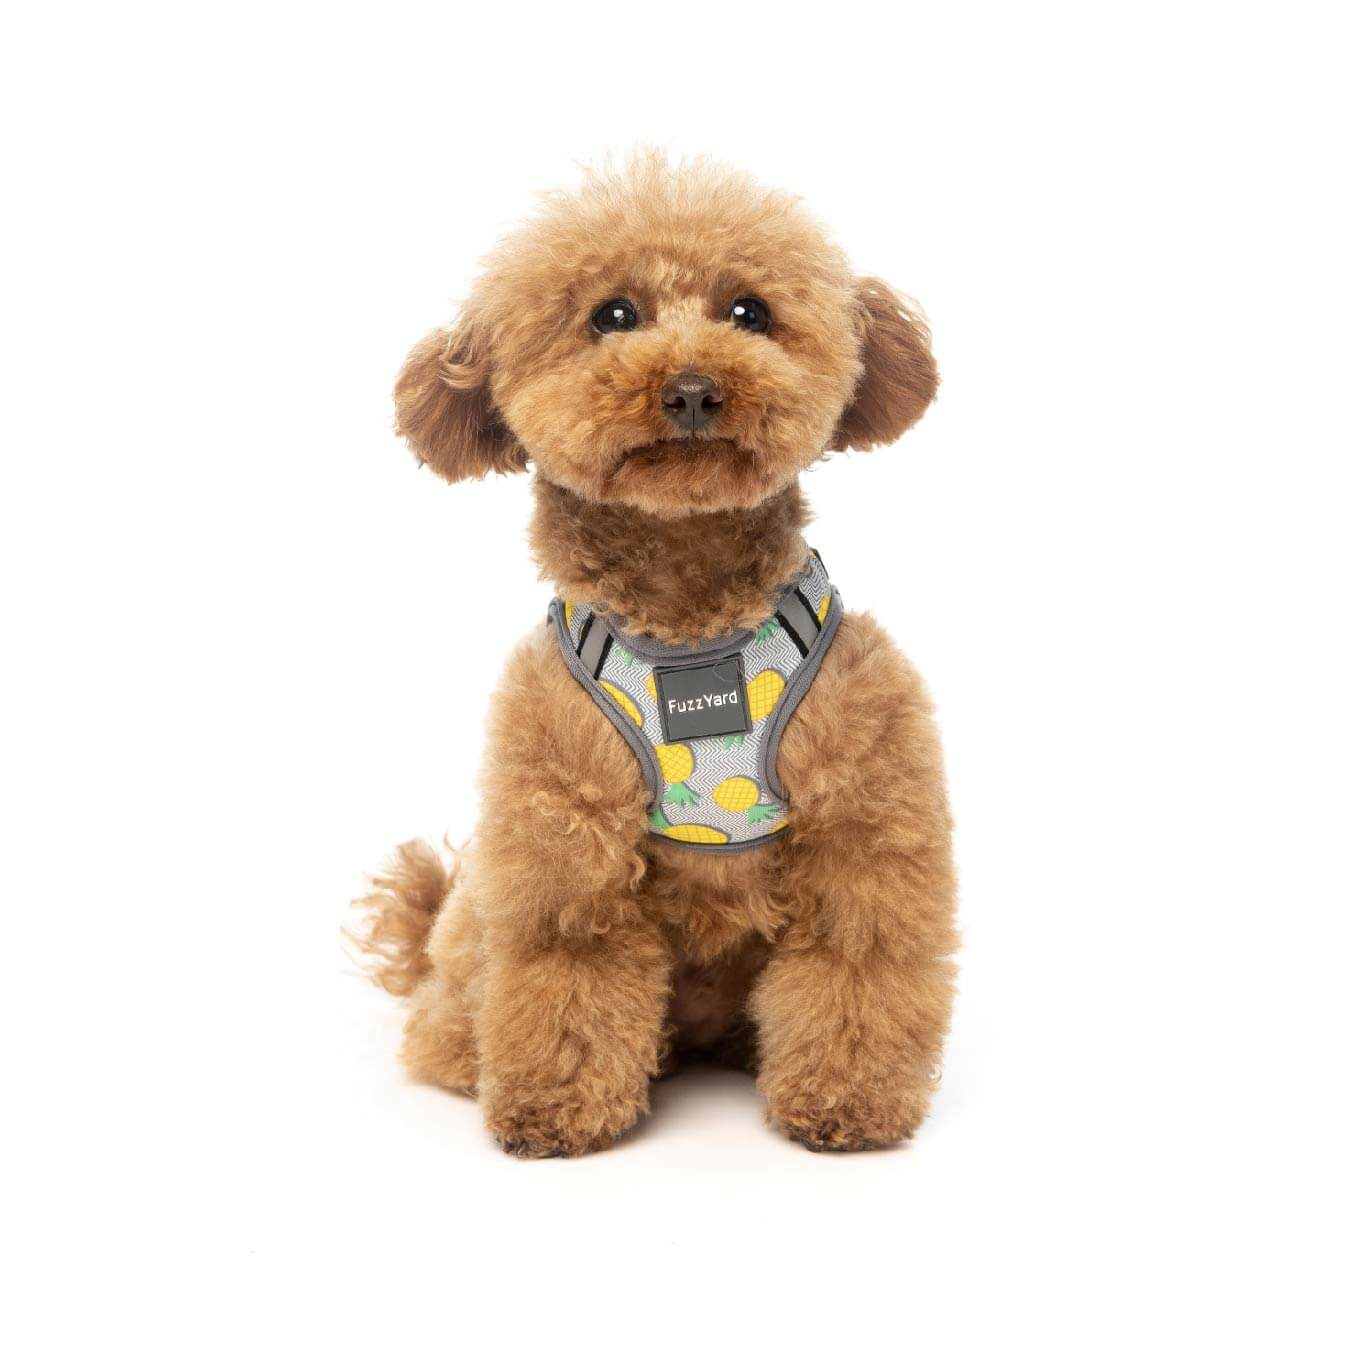 FuzzYard Pina Colada Step-in Harness - Dogs, FuzzYard, Harnesses, New - Shop Vanillapup - Online Pet Shop